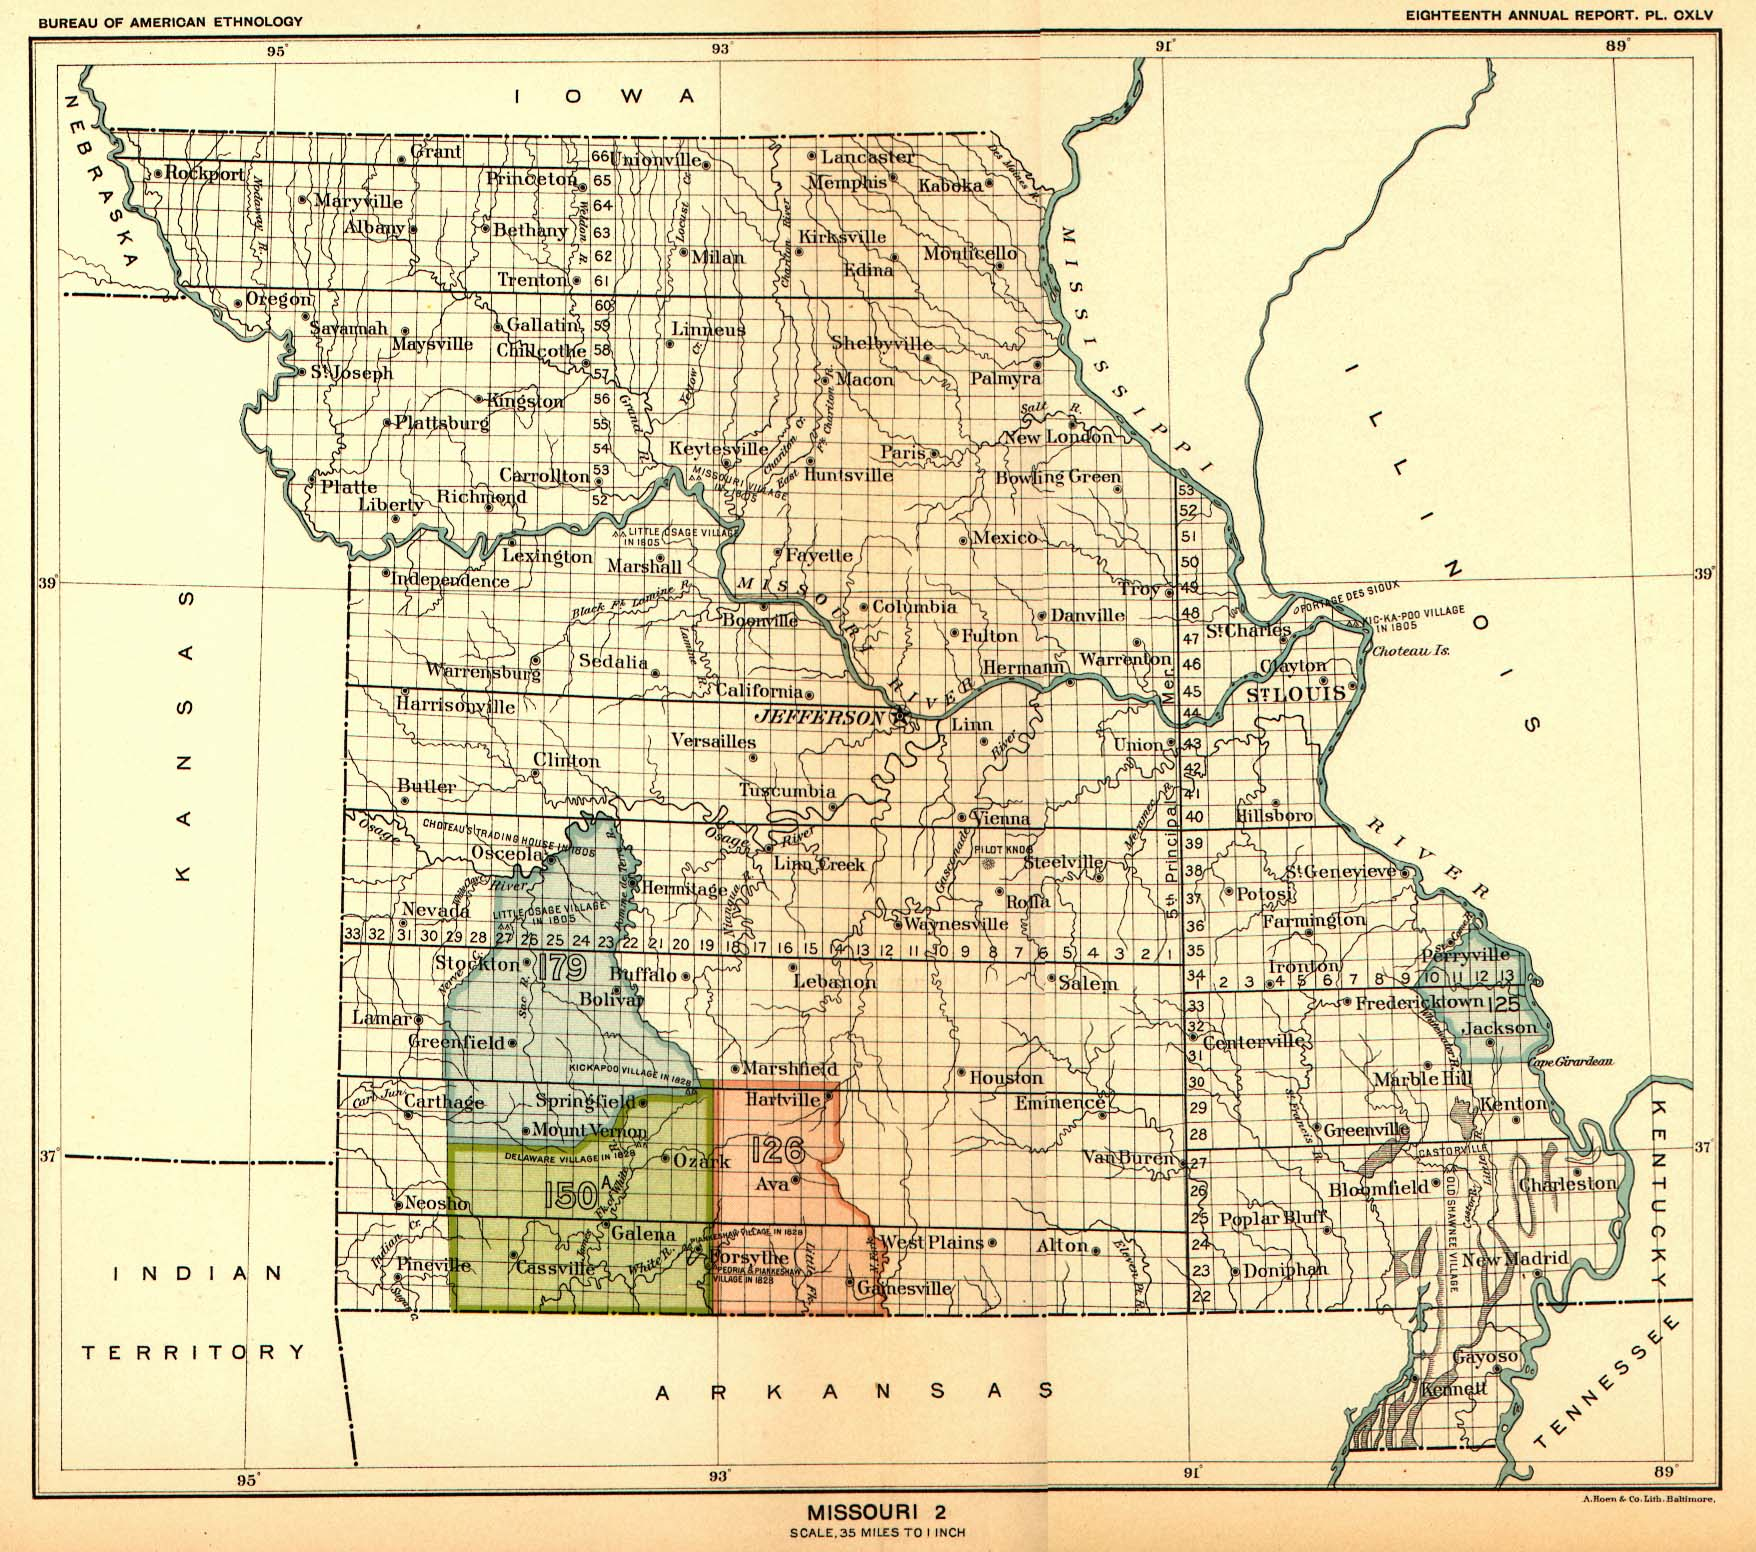 Indian Land Cessions Maps And Treaties In Arkansas Indian - United states map arkansas